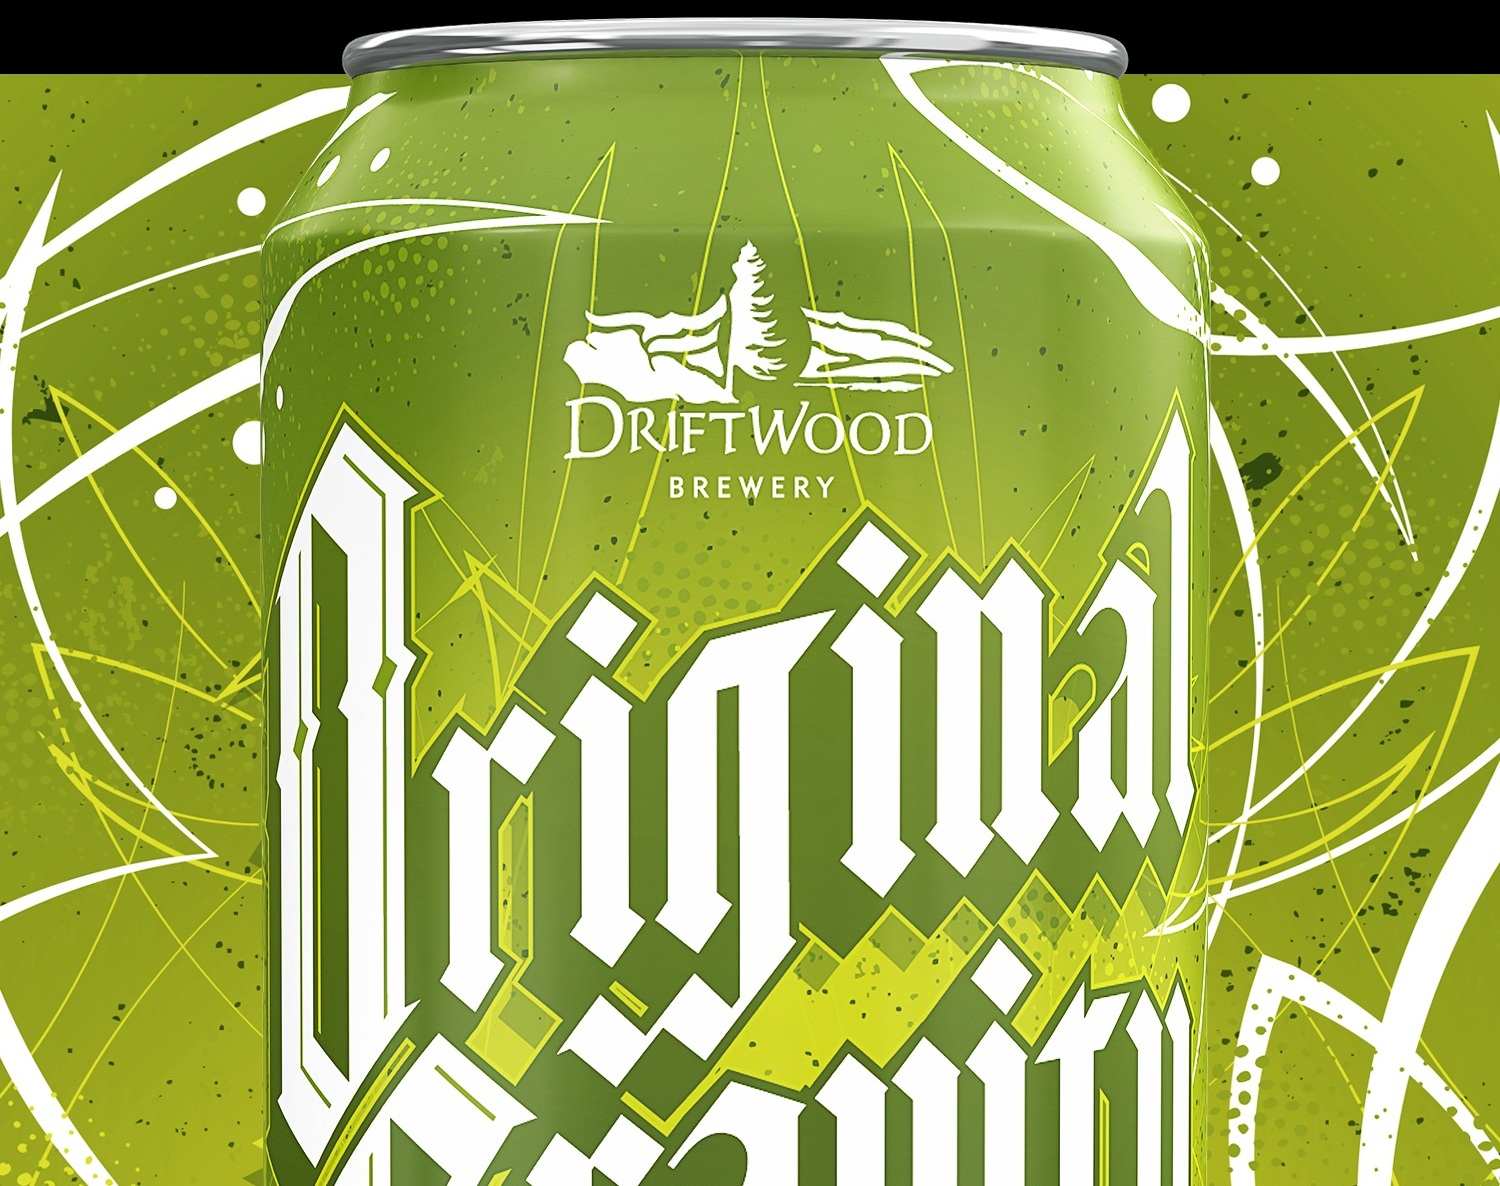 Original%2BGravity%2BHaze%2Bpackaging%2Bdesign%252C%2Bfor%2BDriftwood%2BBrewery